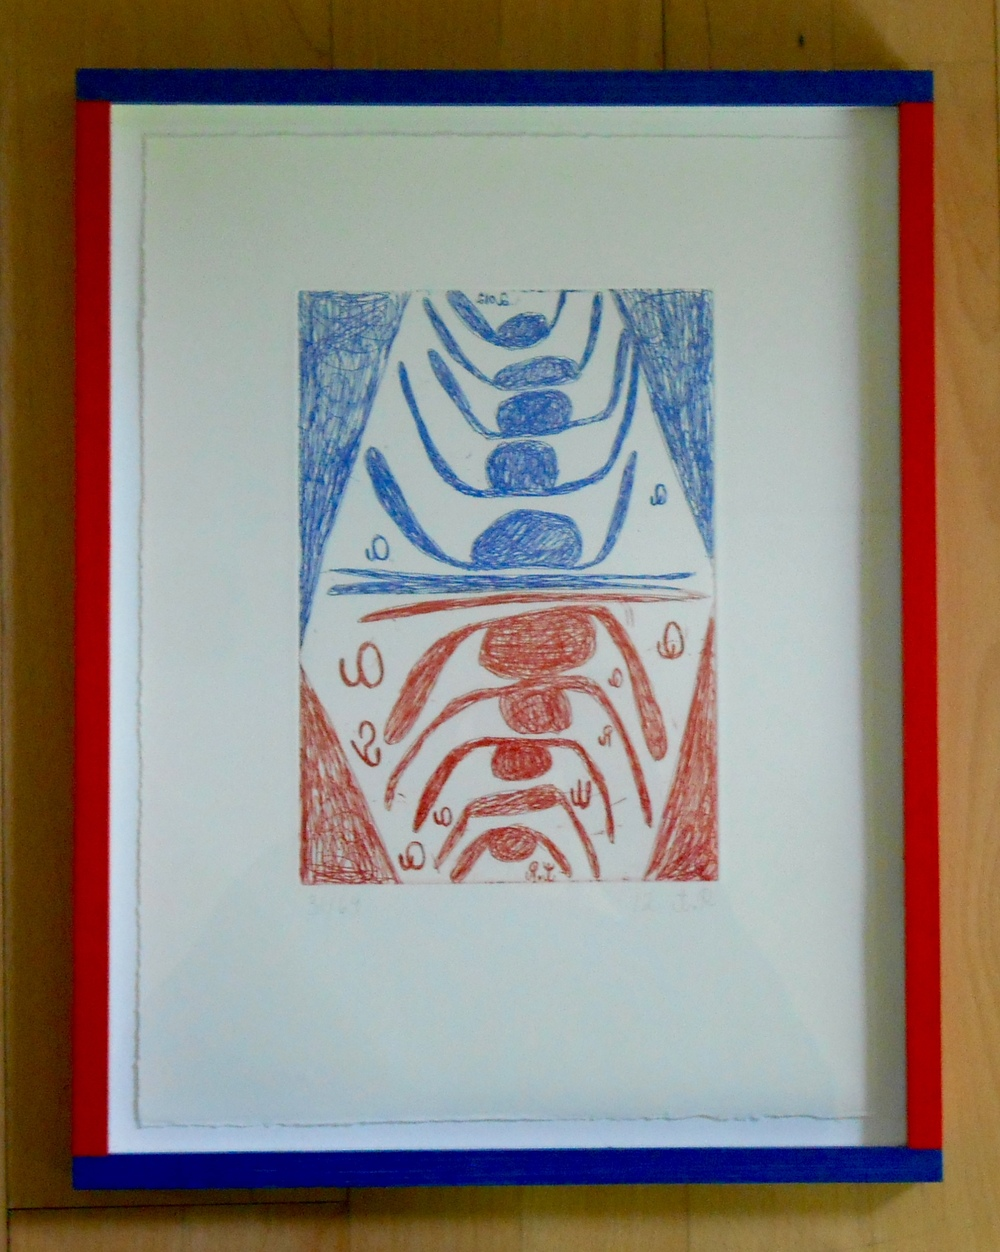 Tal R - Untitled -  2012 - etching- framed 33x42c